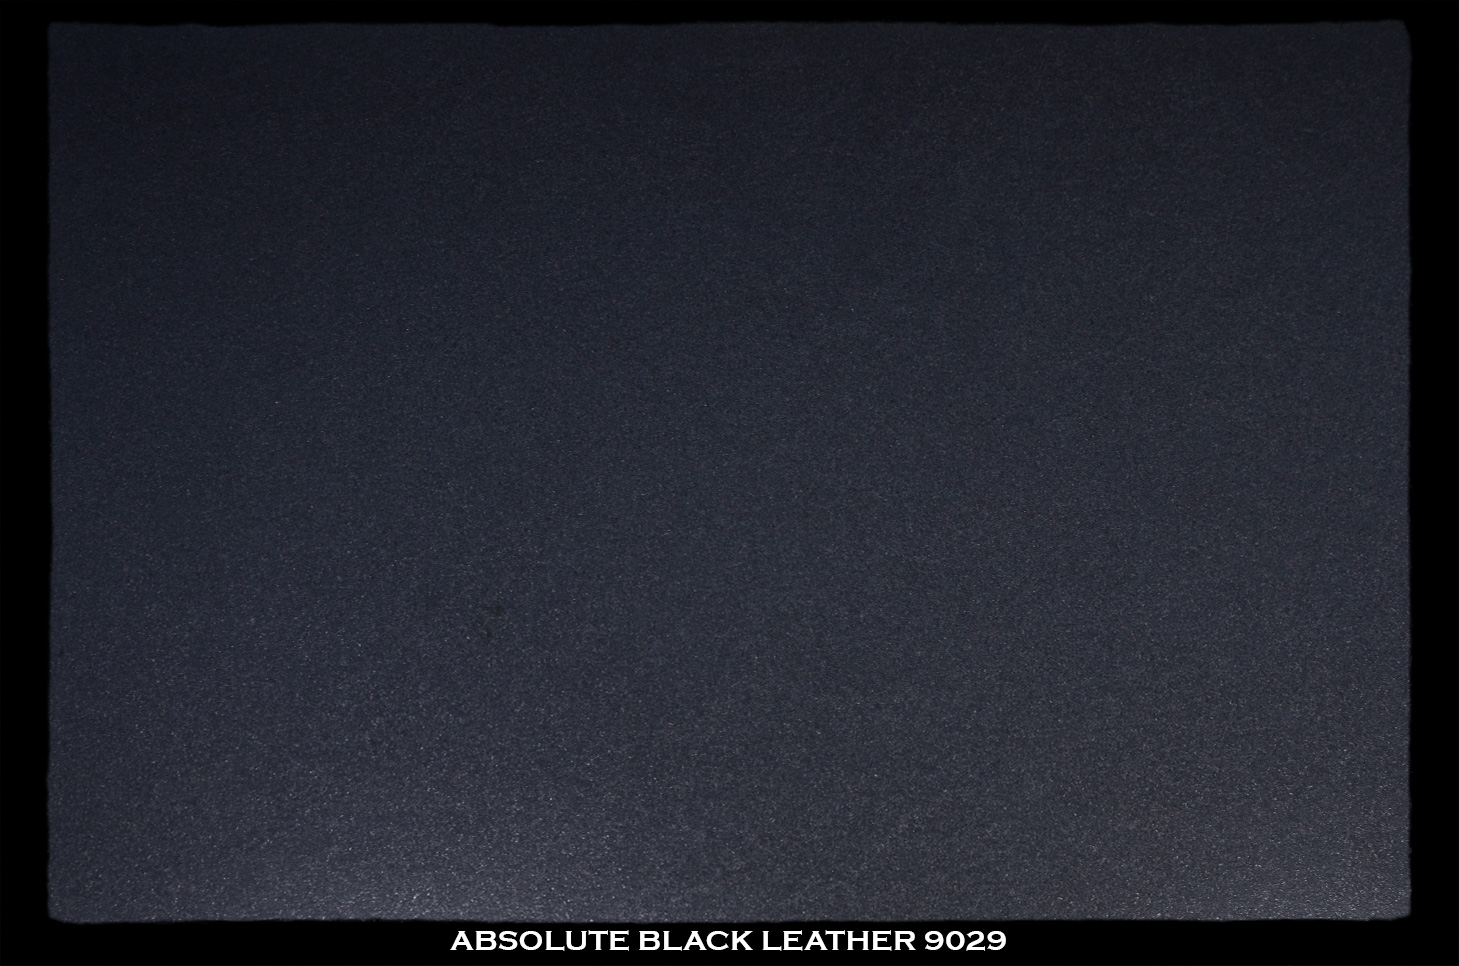 ABSOLUTE-BLACK-LEATHER-9029-SLAB